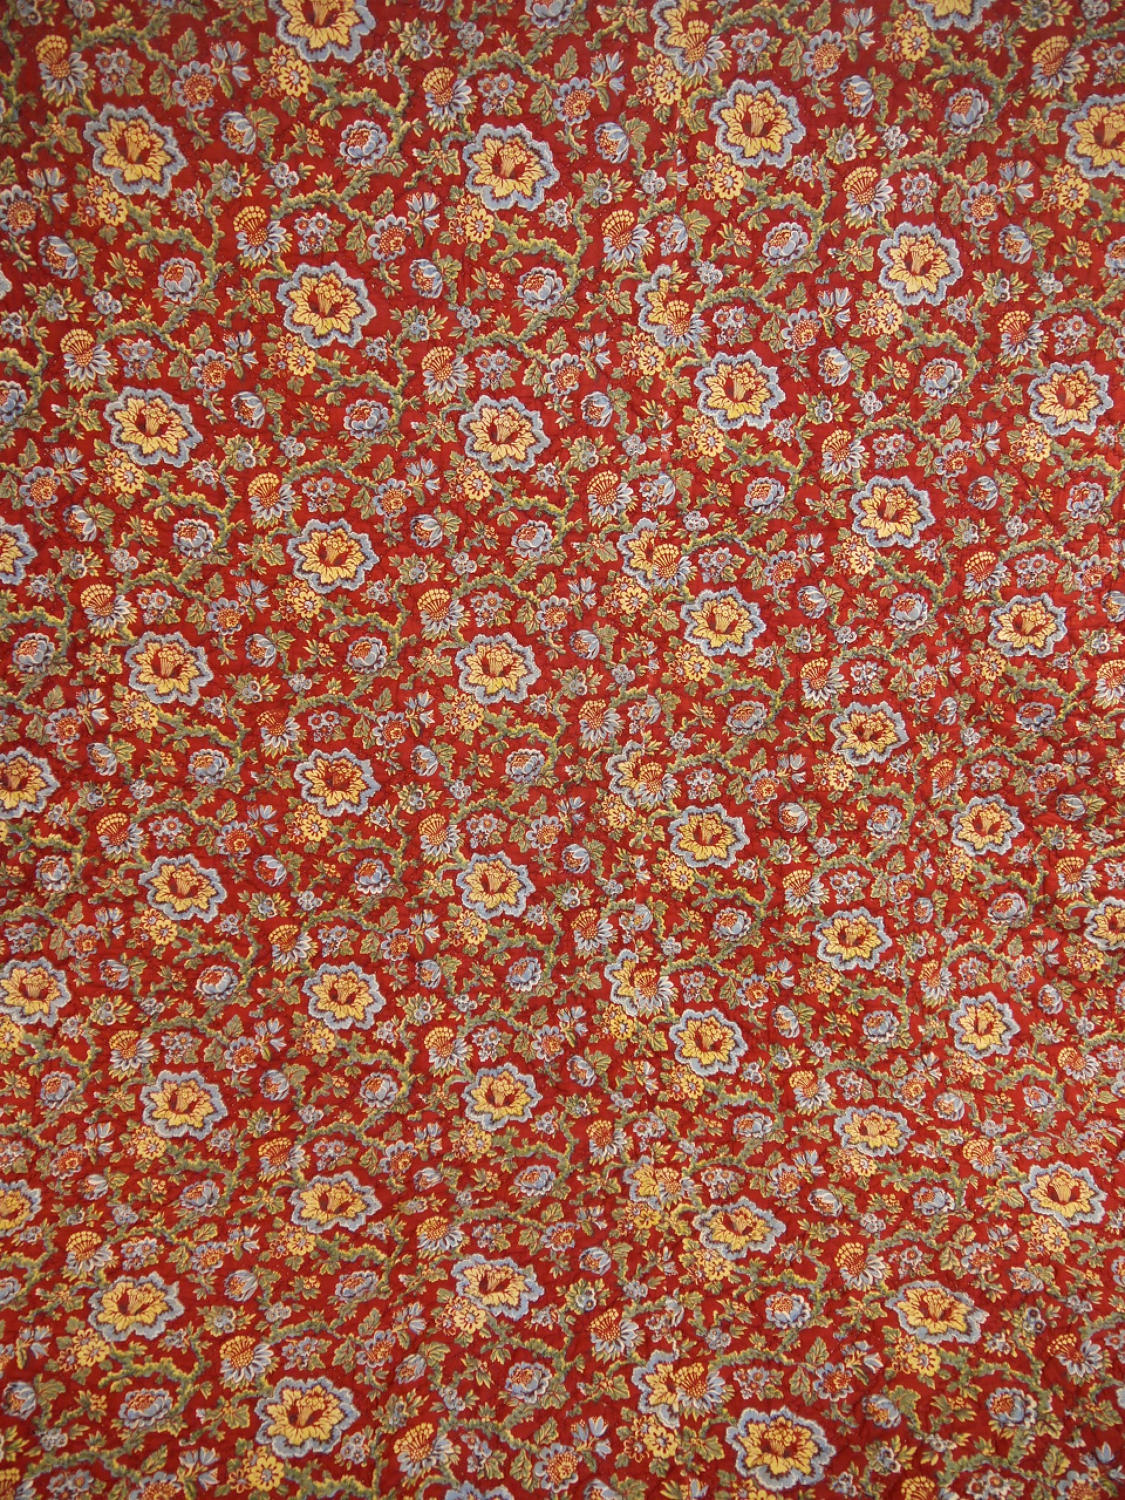 Circa 1800 French madder red and pastel large quilt